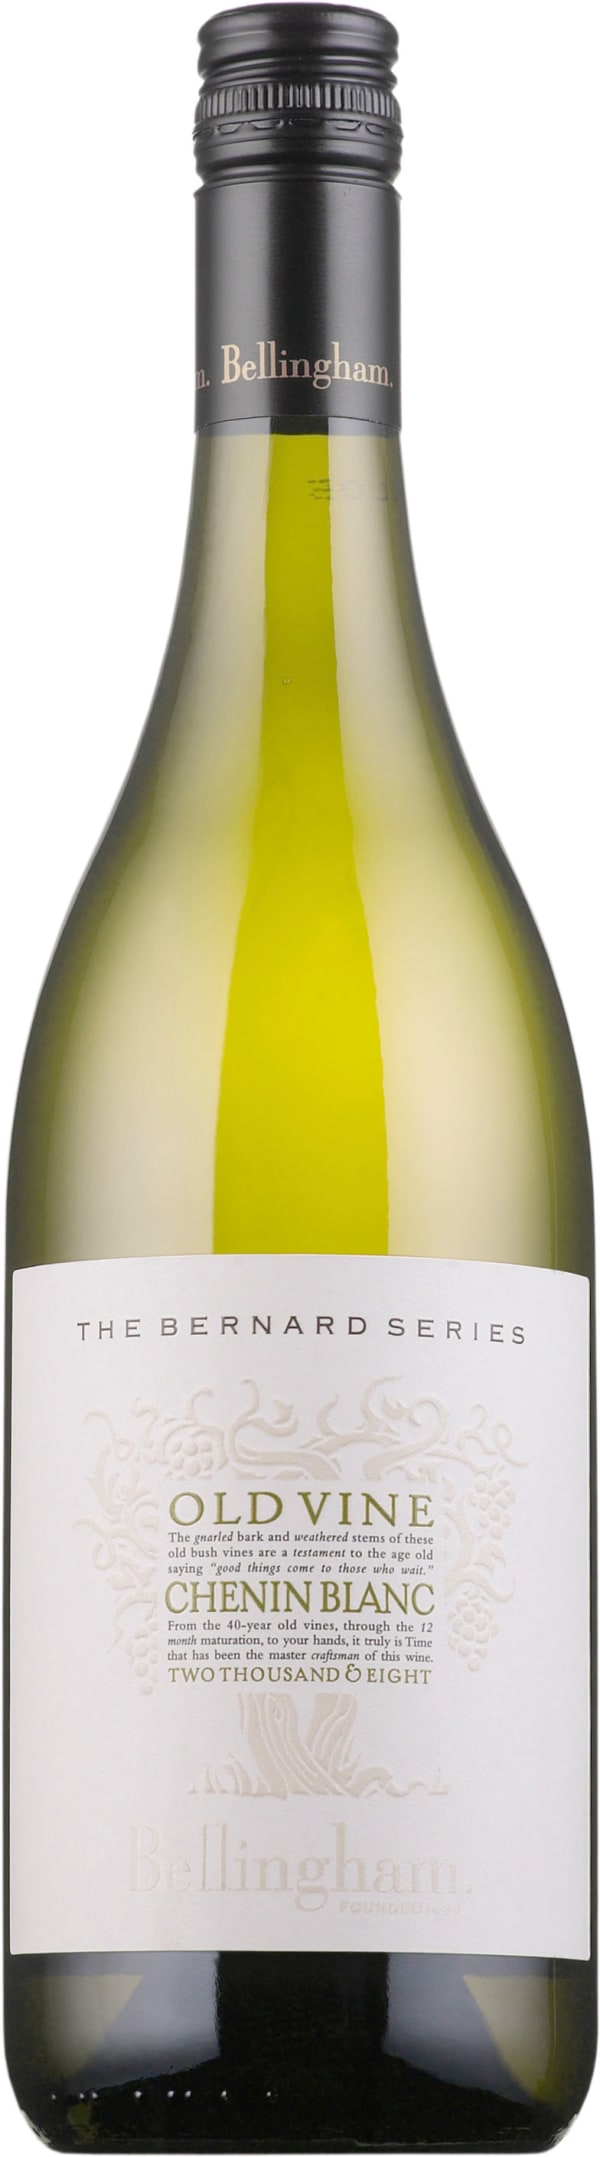 Bellingham The Bernard Series Old Vine Chenin Blanc 2017